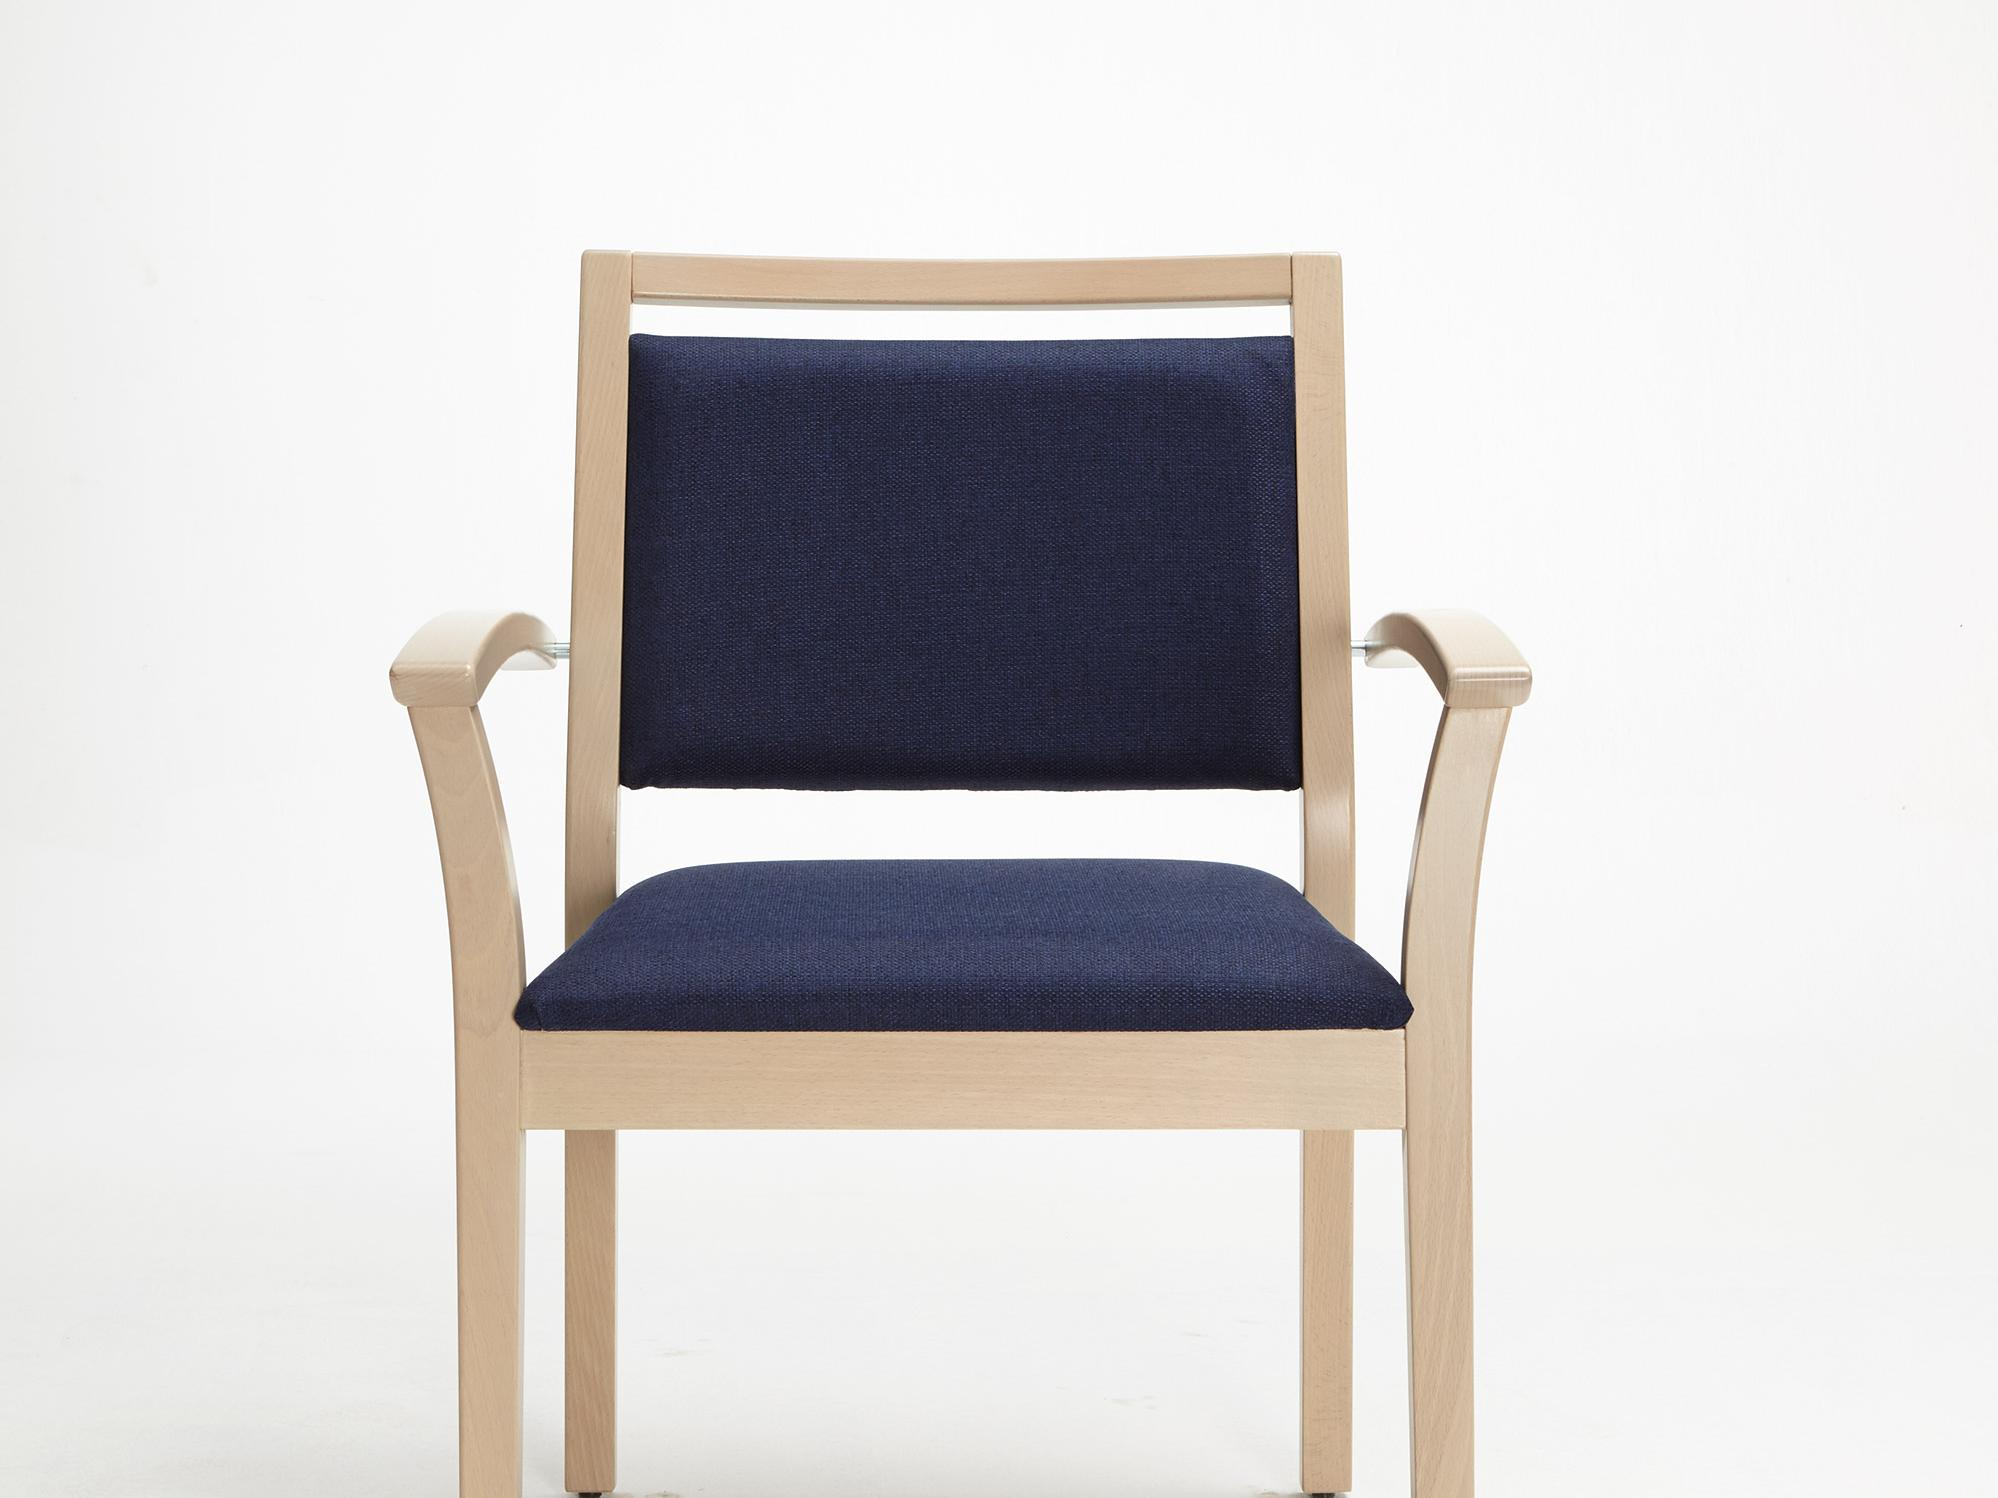 The Mavo model as a heavy-duty chair